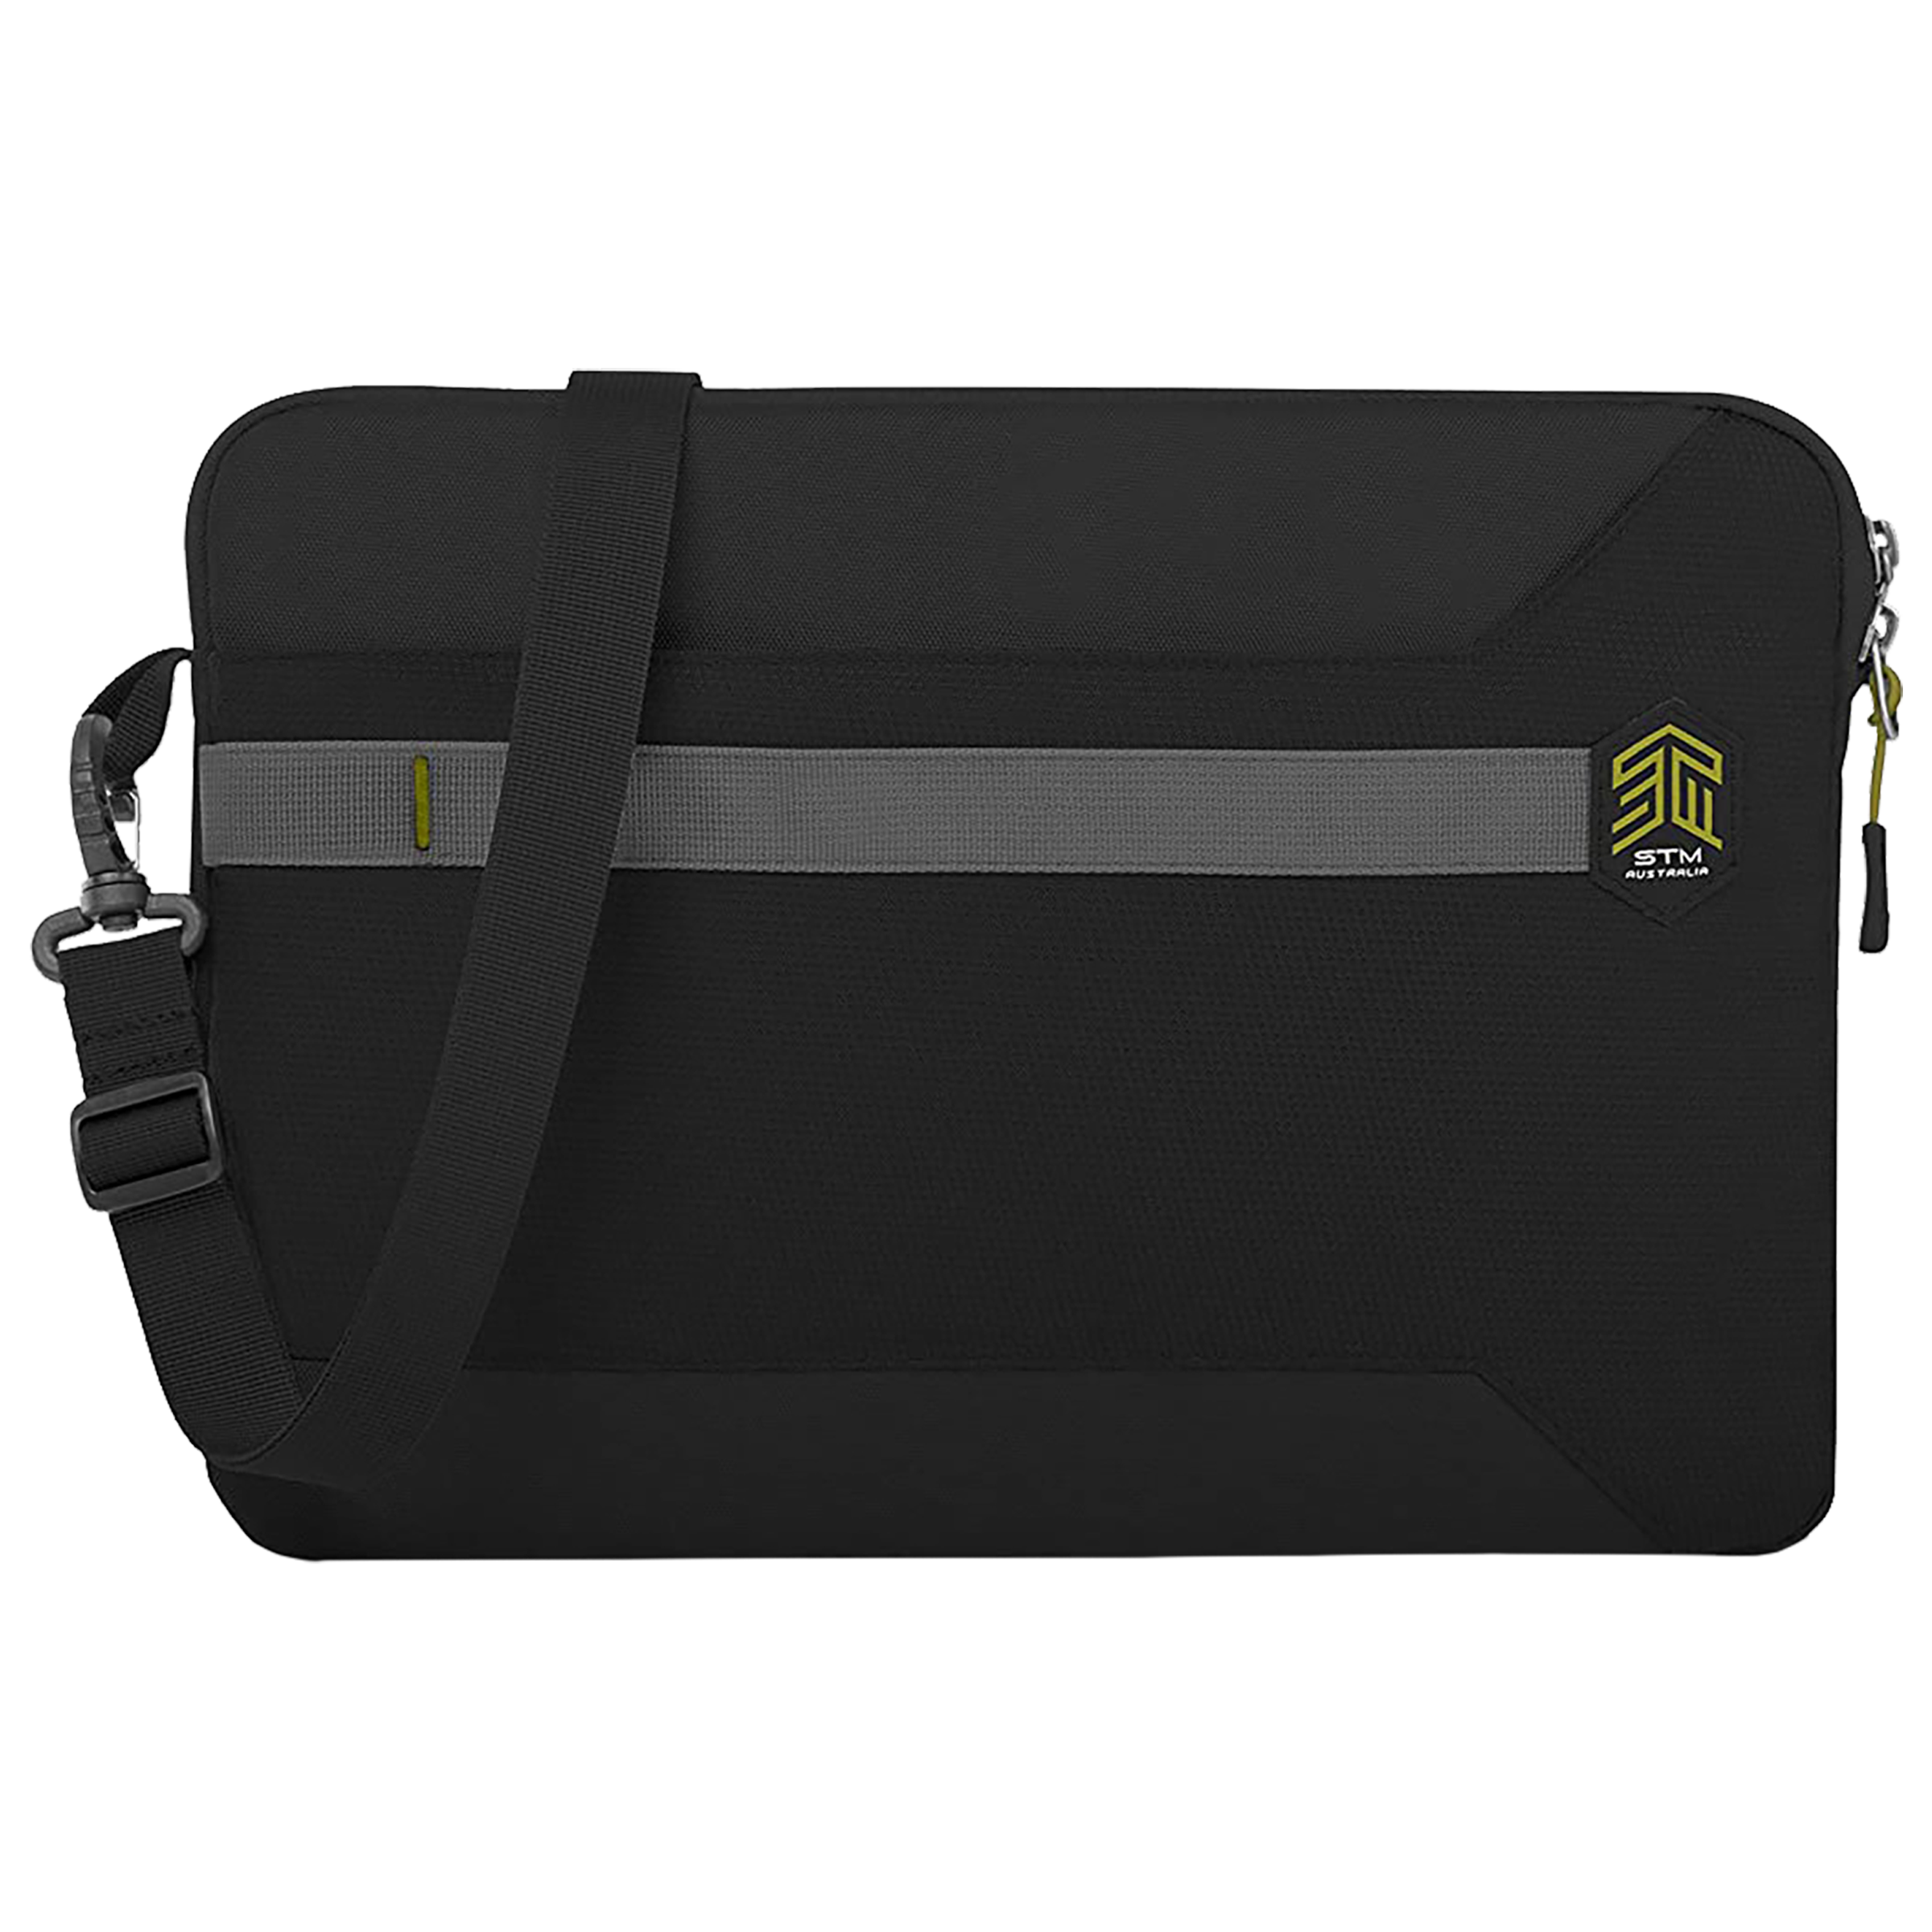 STM Blazer Litres Polyester Sleeve for 13 Inch Laptop (Water Resistant Fabric, STM-114-191M-01, Black)_1